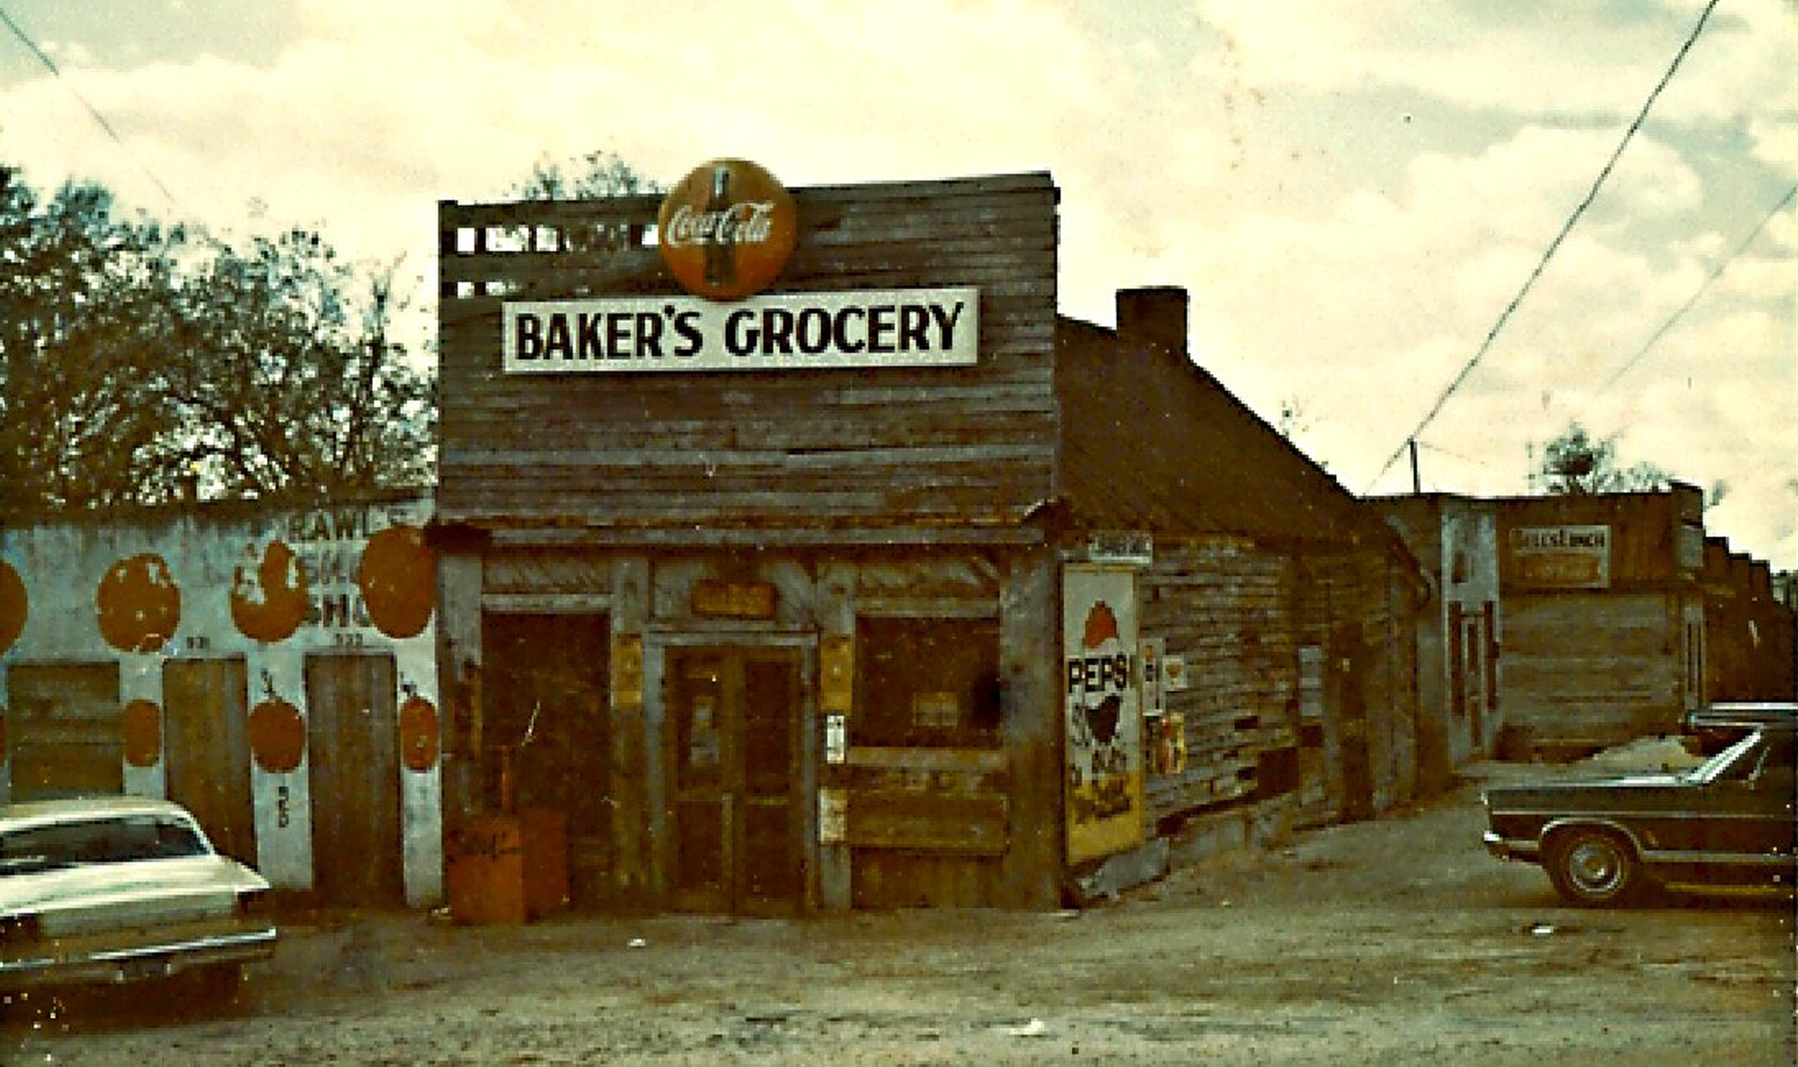 Baker's Grocery at 931 Park Street, Columbia, SC